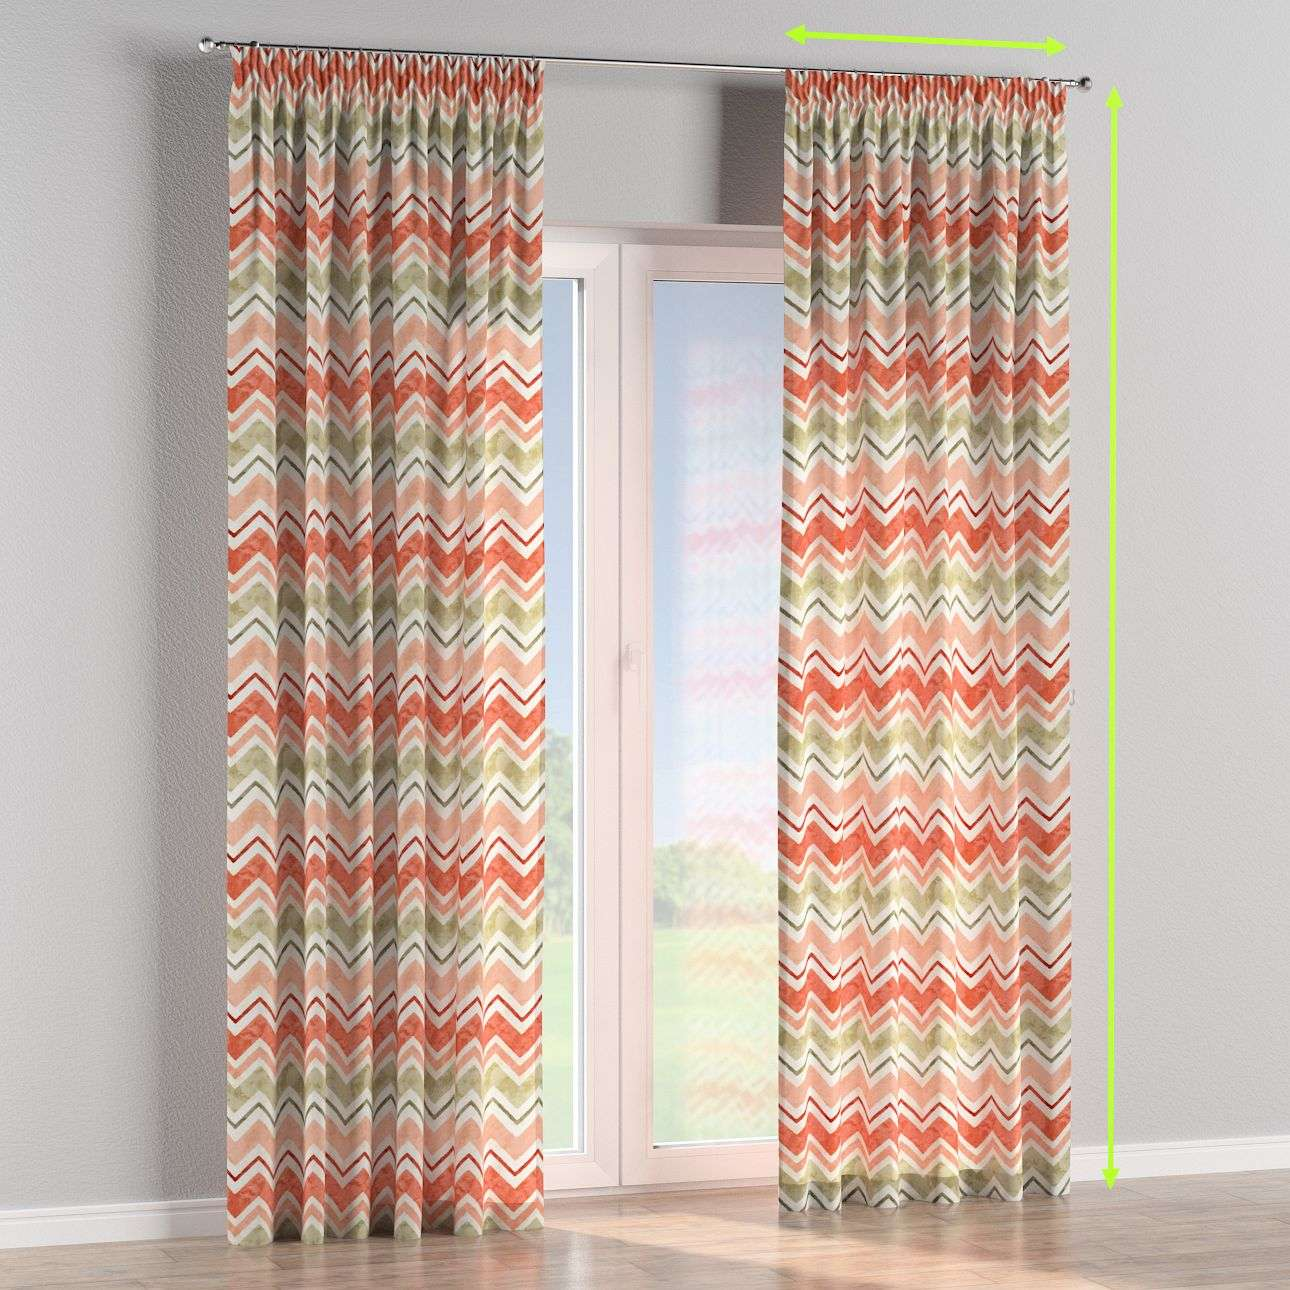 Pencil pleat curtains in collection Acapulco, fabric: 141-40